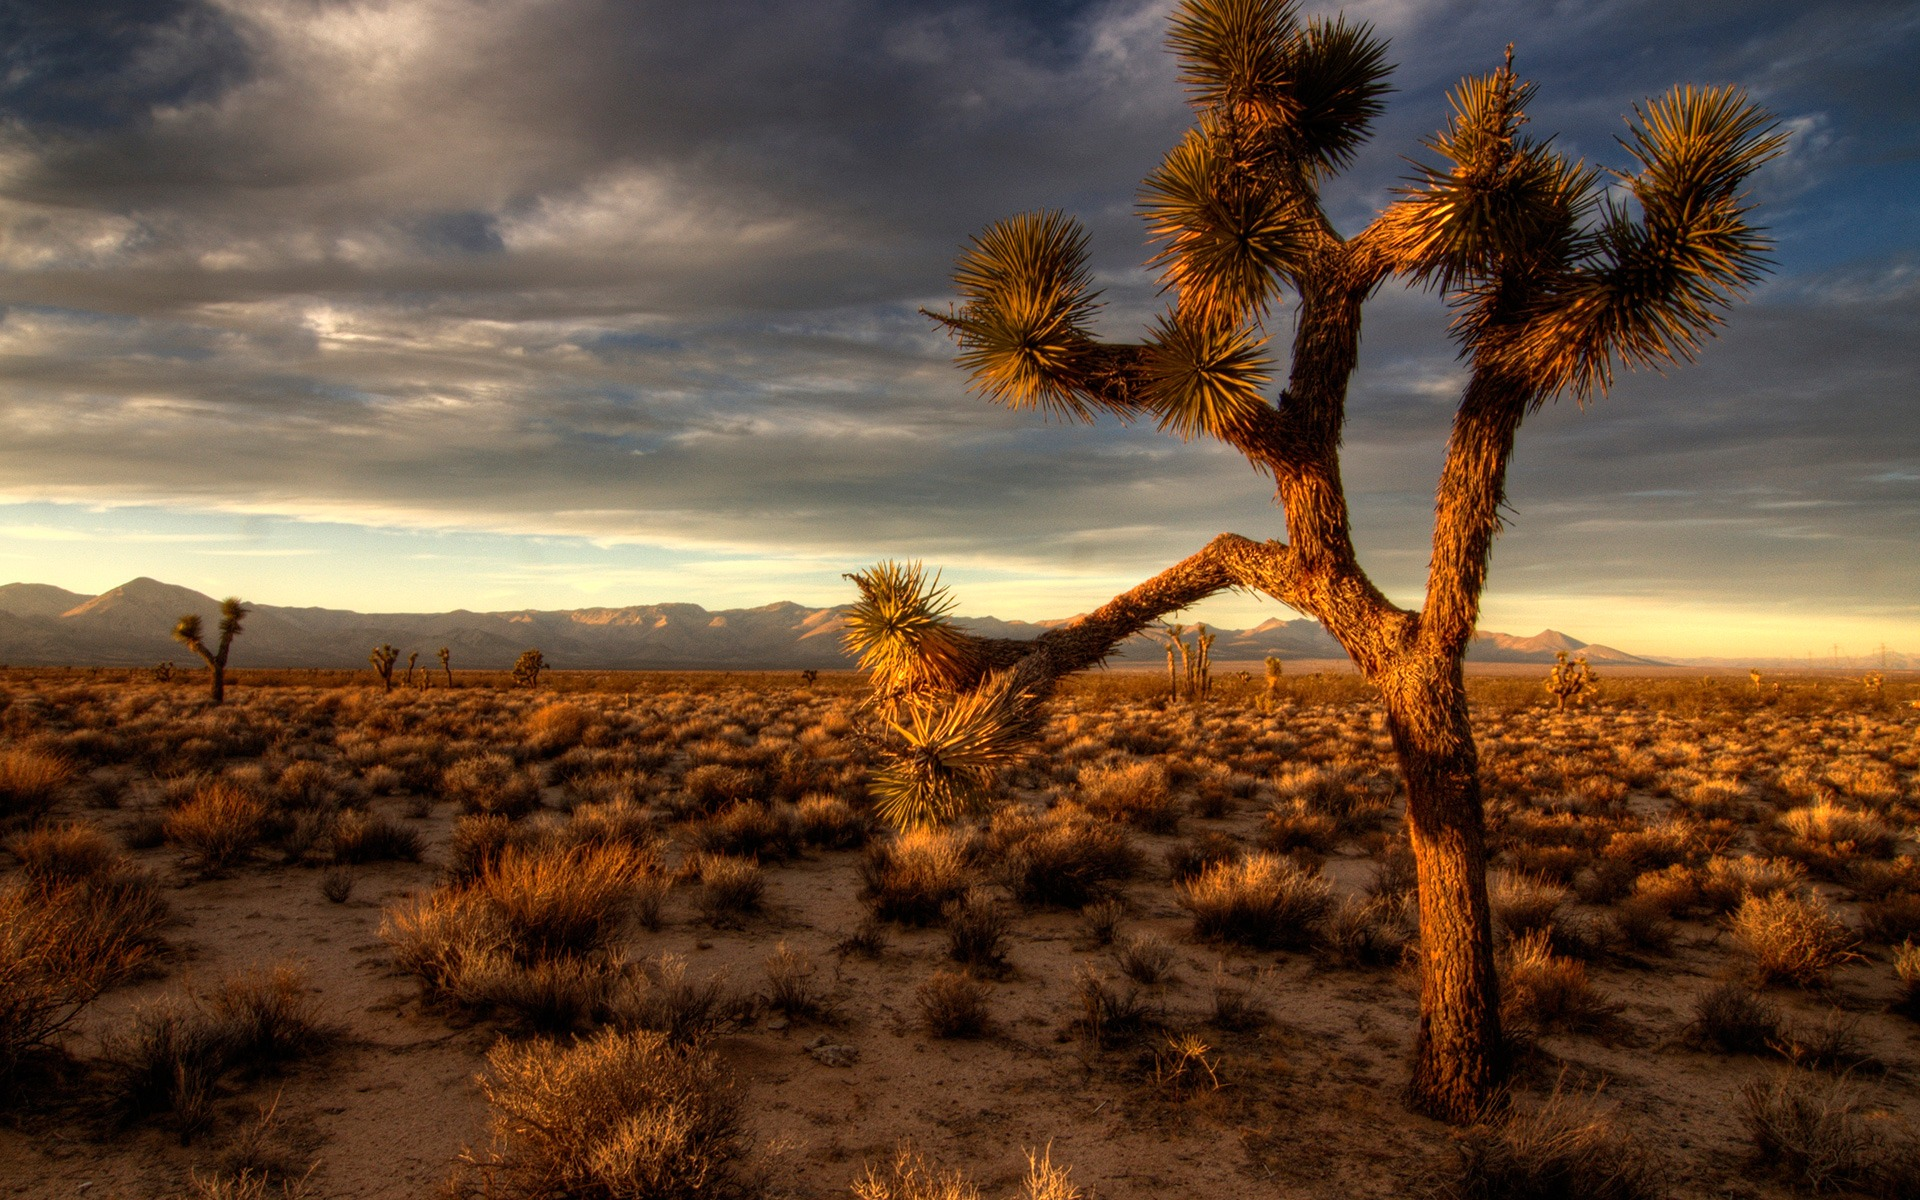 mojave desert scenery wallpaper - photo #13